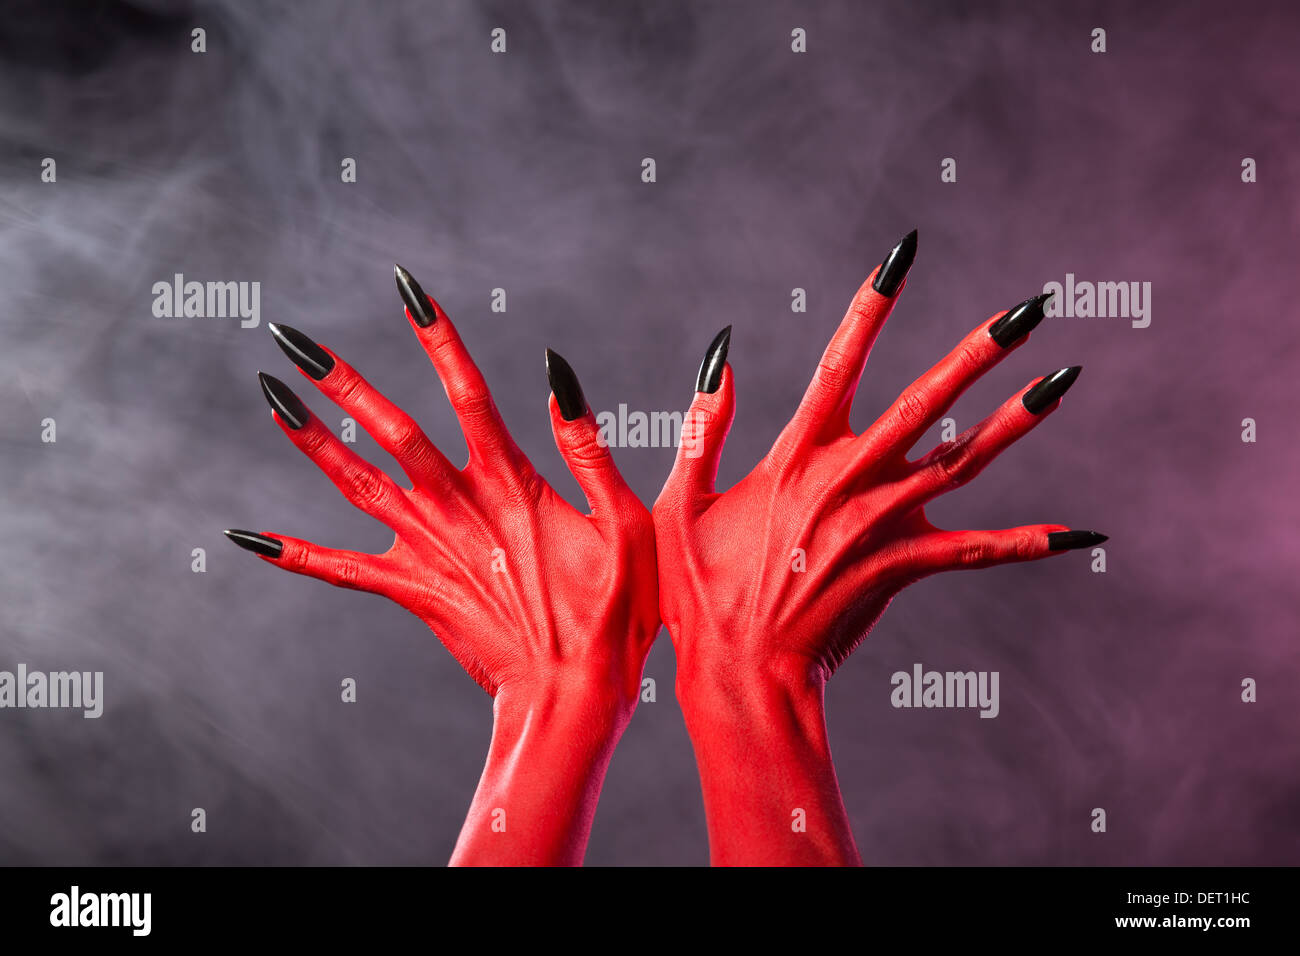 Red Devil Hands With Sharp Black Nails Extreme Body Art Studio Shot Stock Photo Alamy